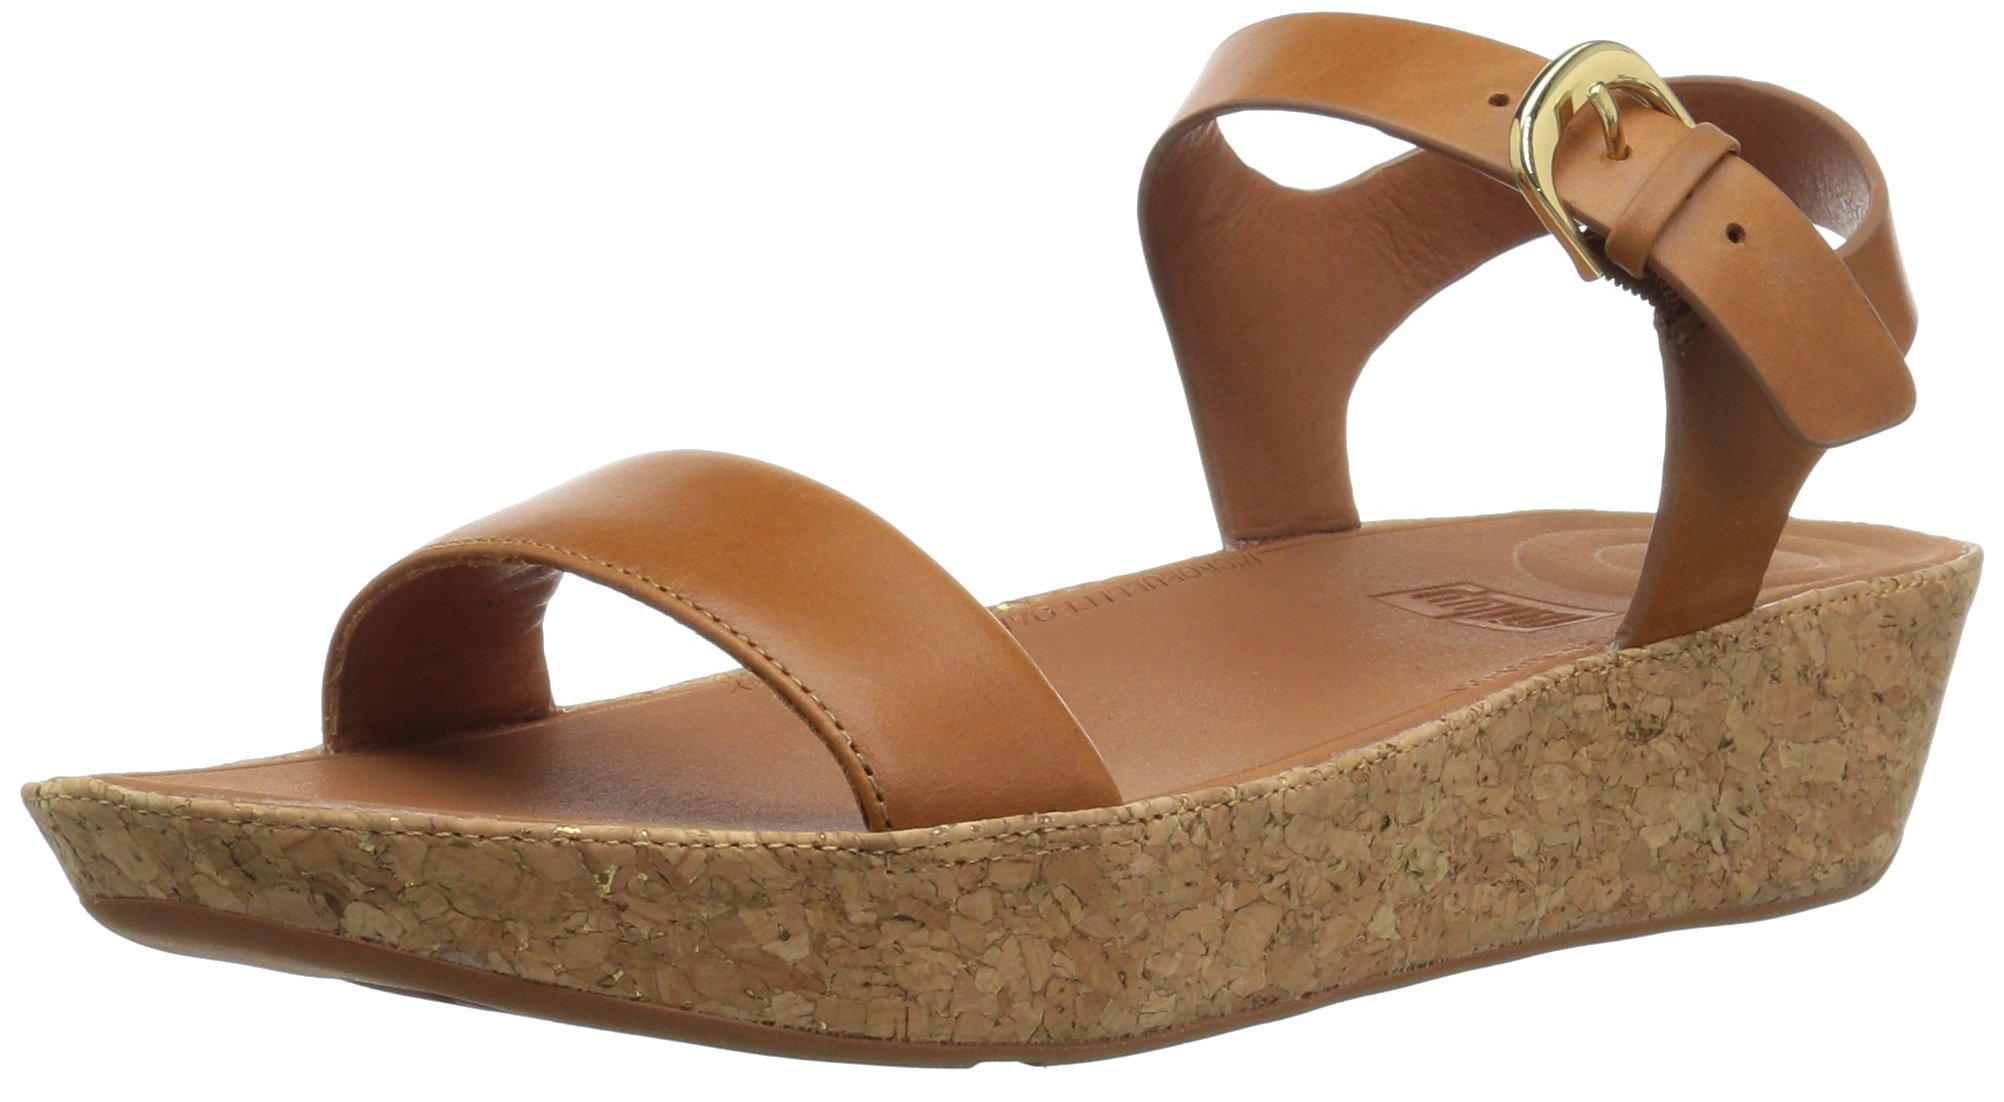 FitFlop Women's Bon II Back-Strap Sandals Medical Professional Shoe, Caramel, 7 M US